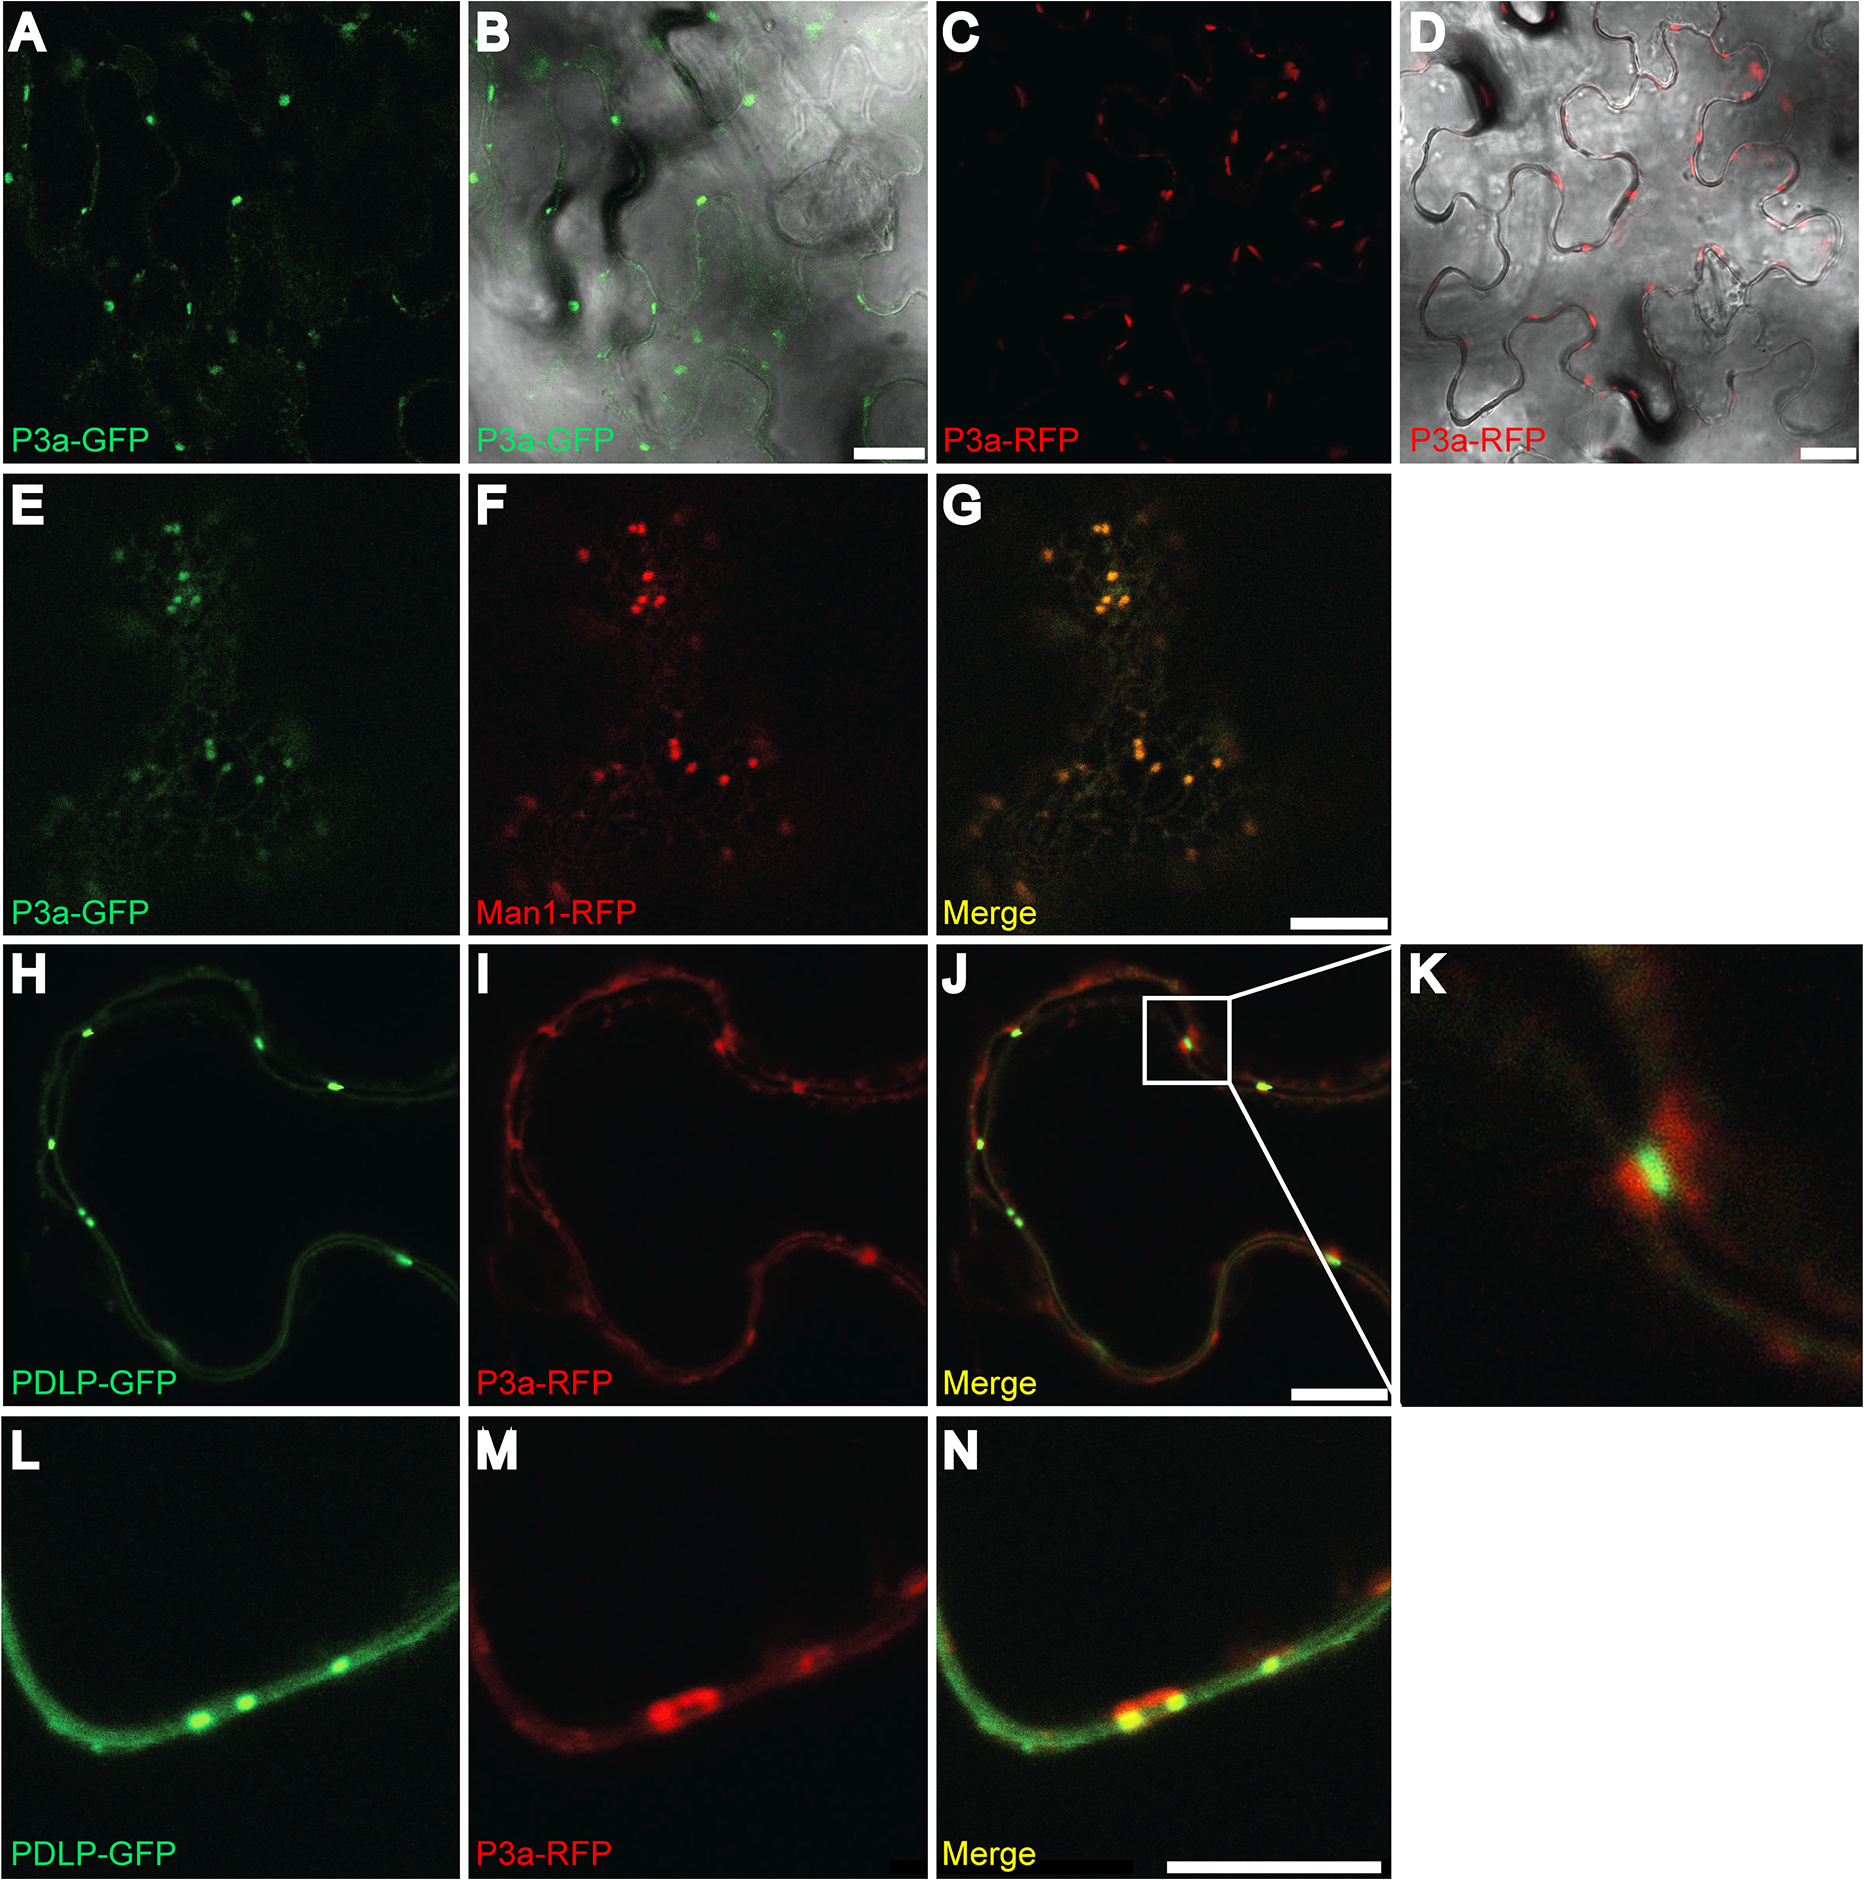 Subcellular localization of P3a.